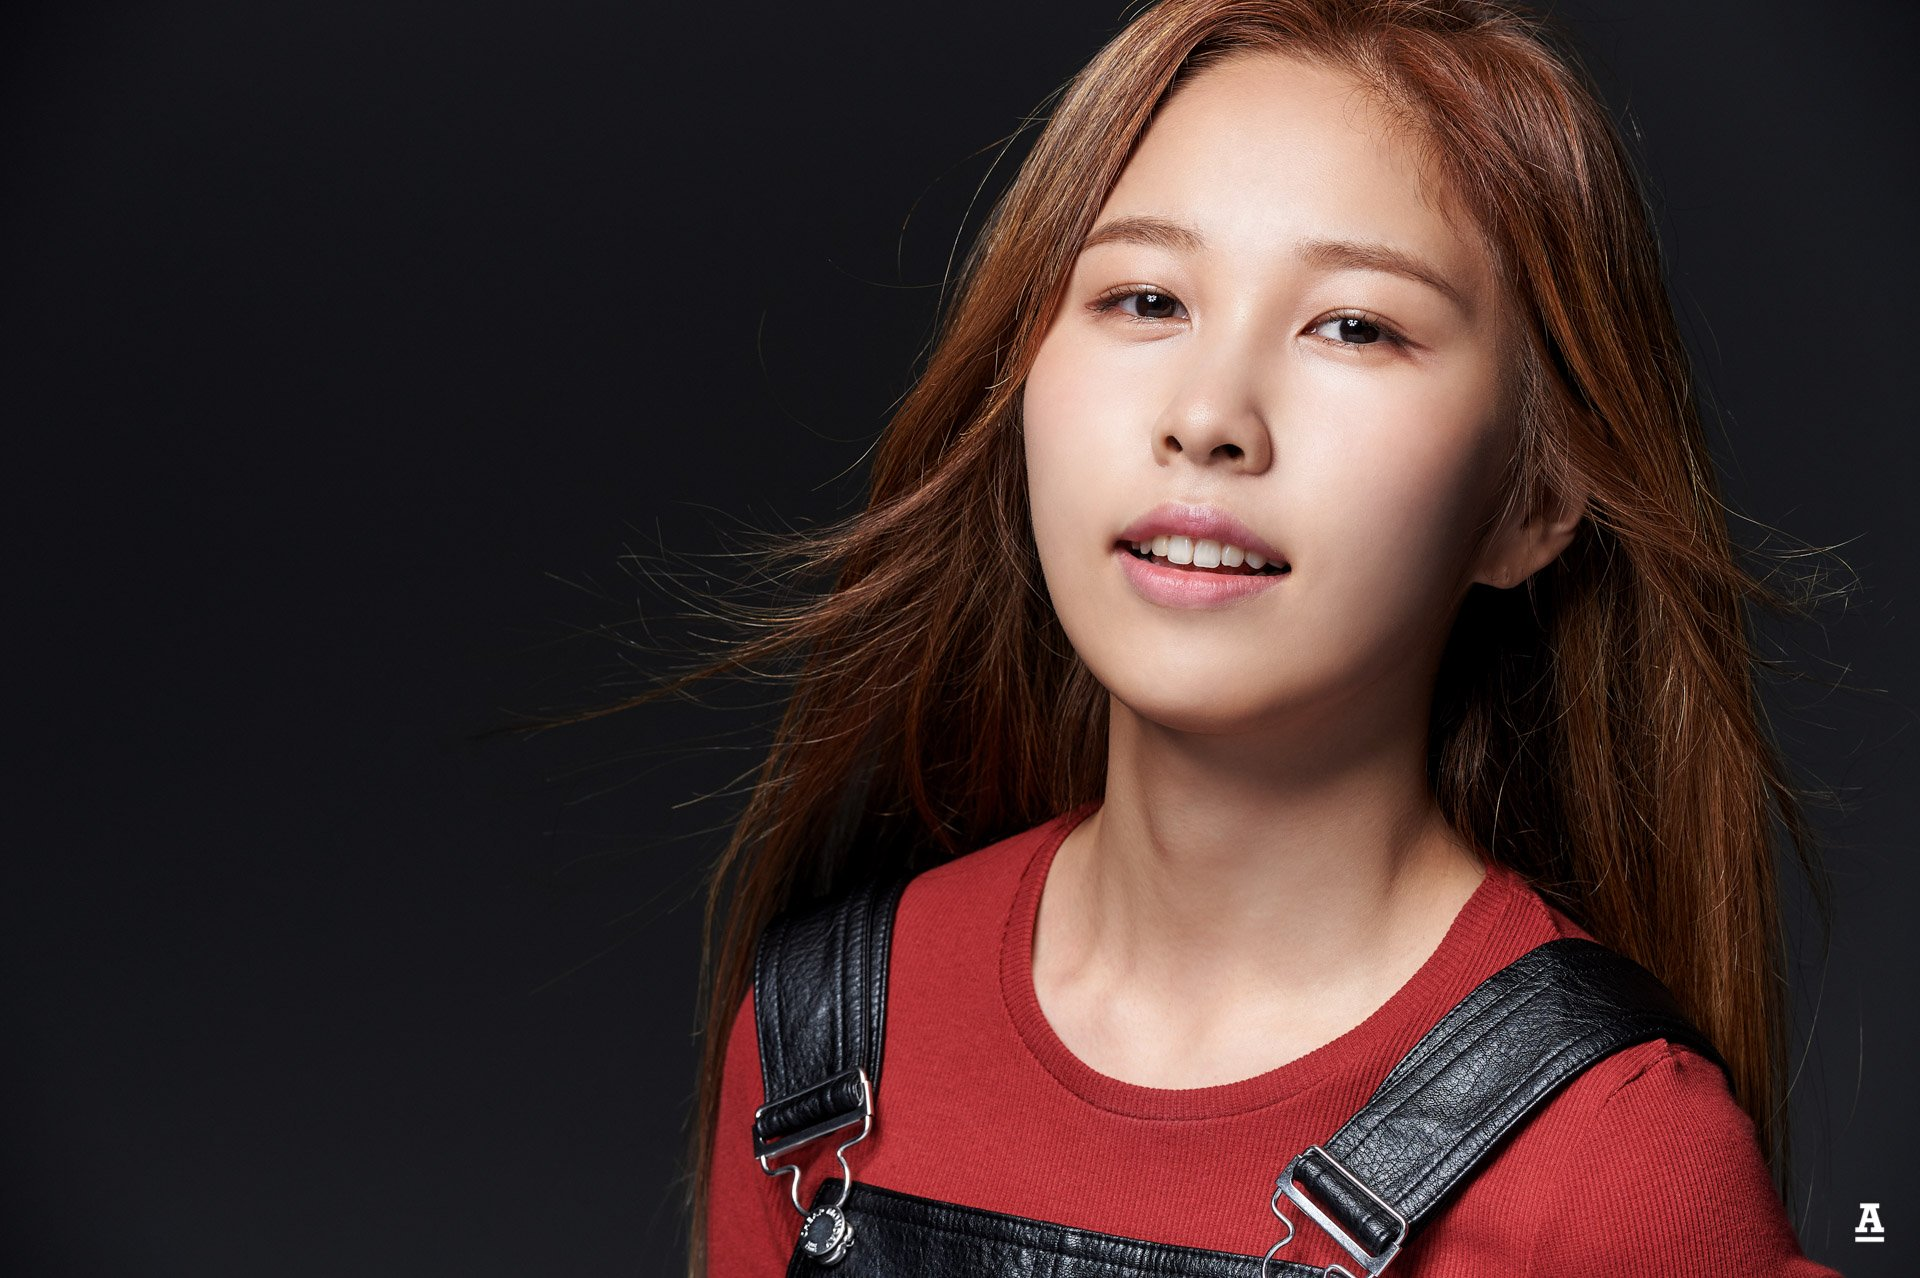 Kwon Jin Ah (권진아) Lyrics, Music, News and Biography | MetroLyrics